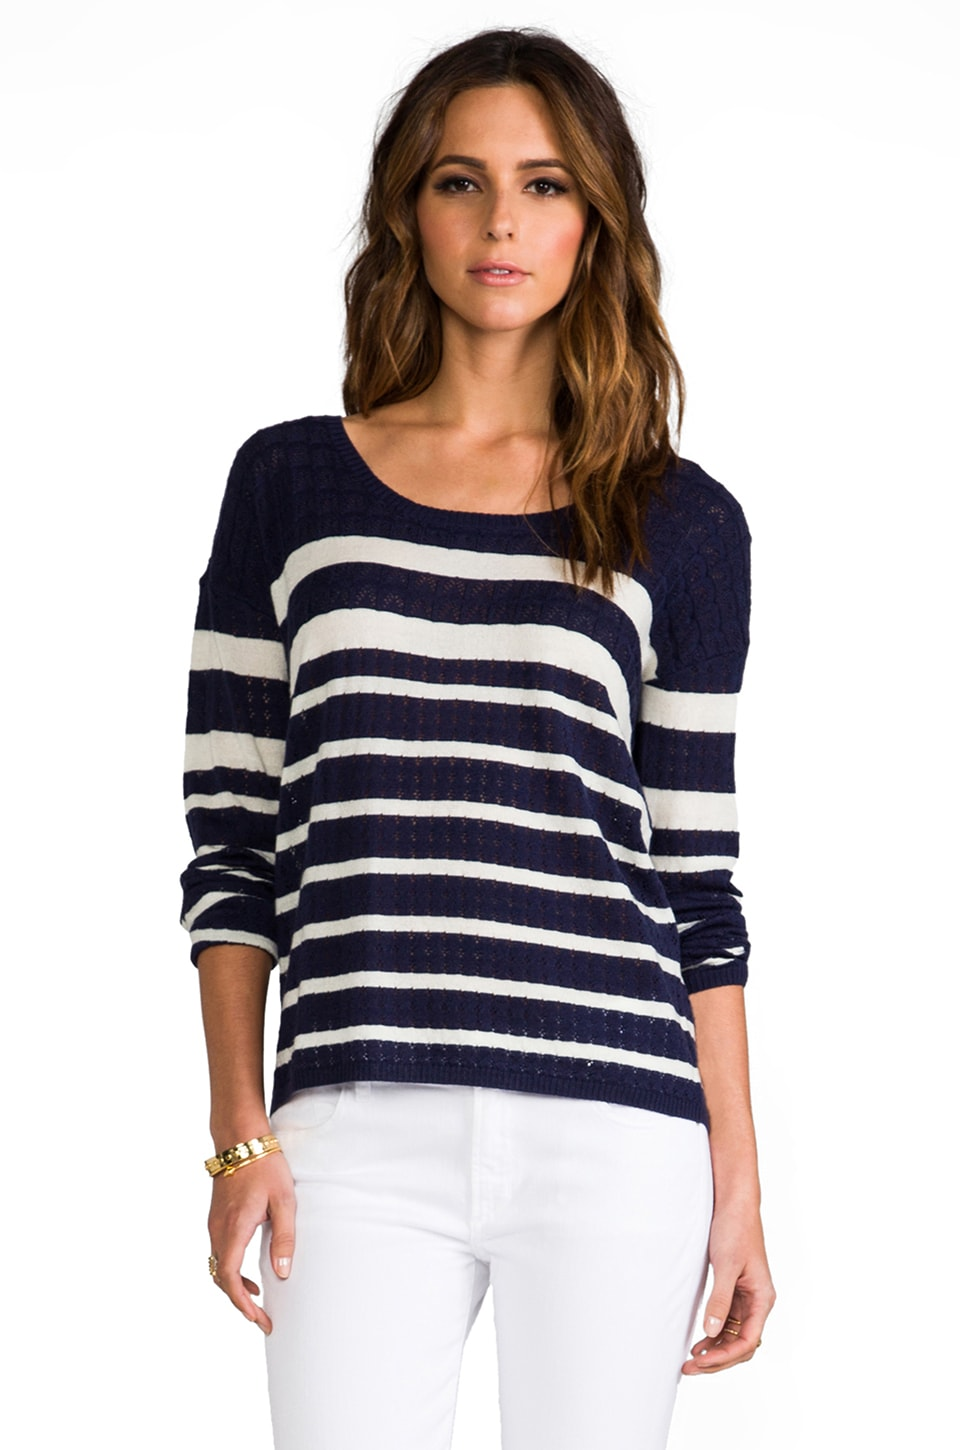 Soft Joie Bravo Long Sleeve Tee in Estate Blue Porcelain Stripe